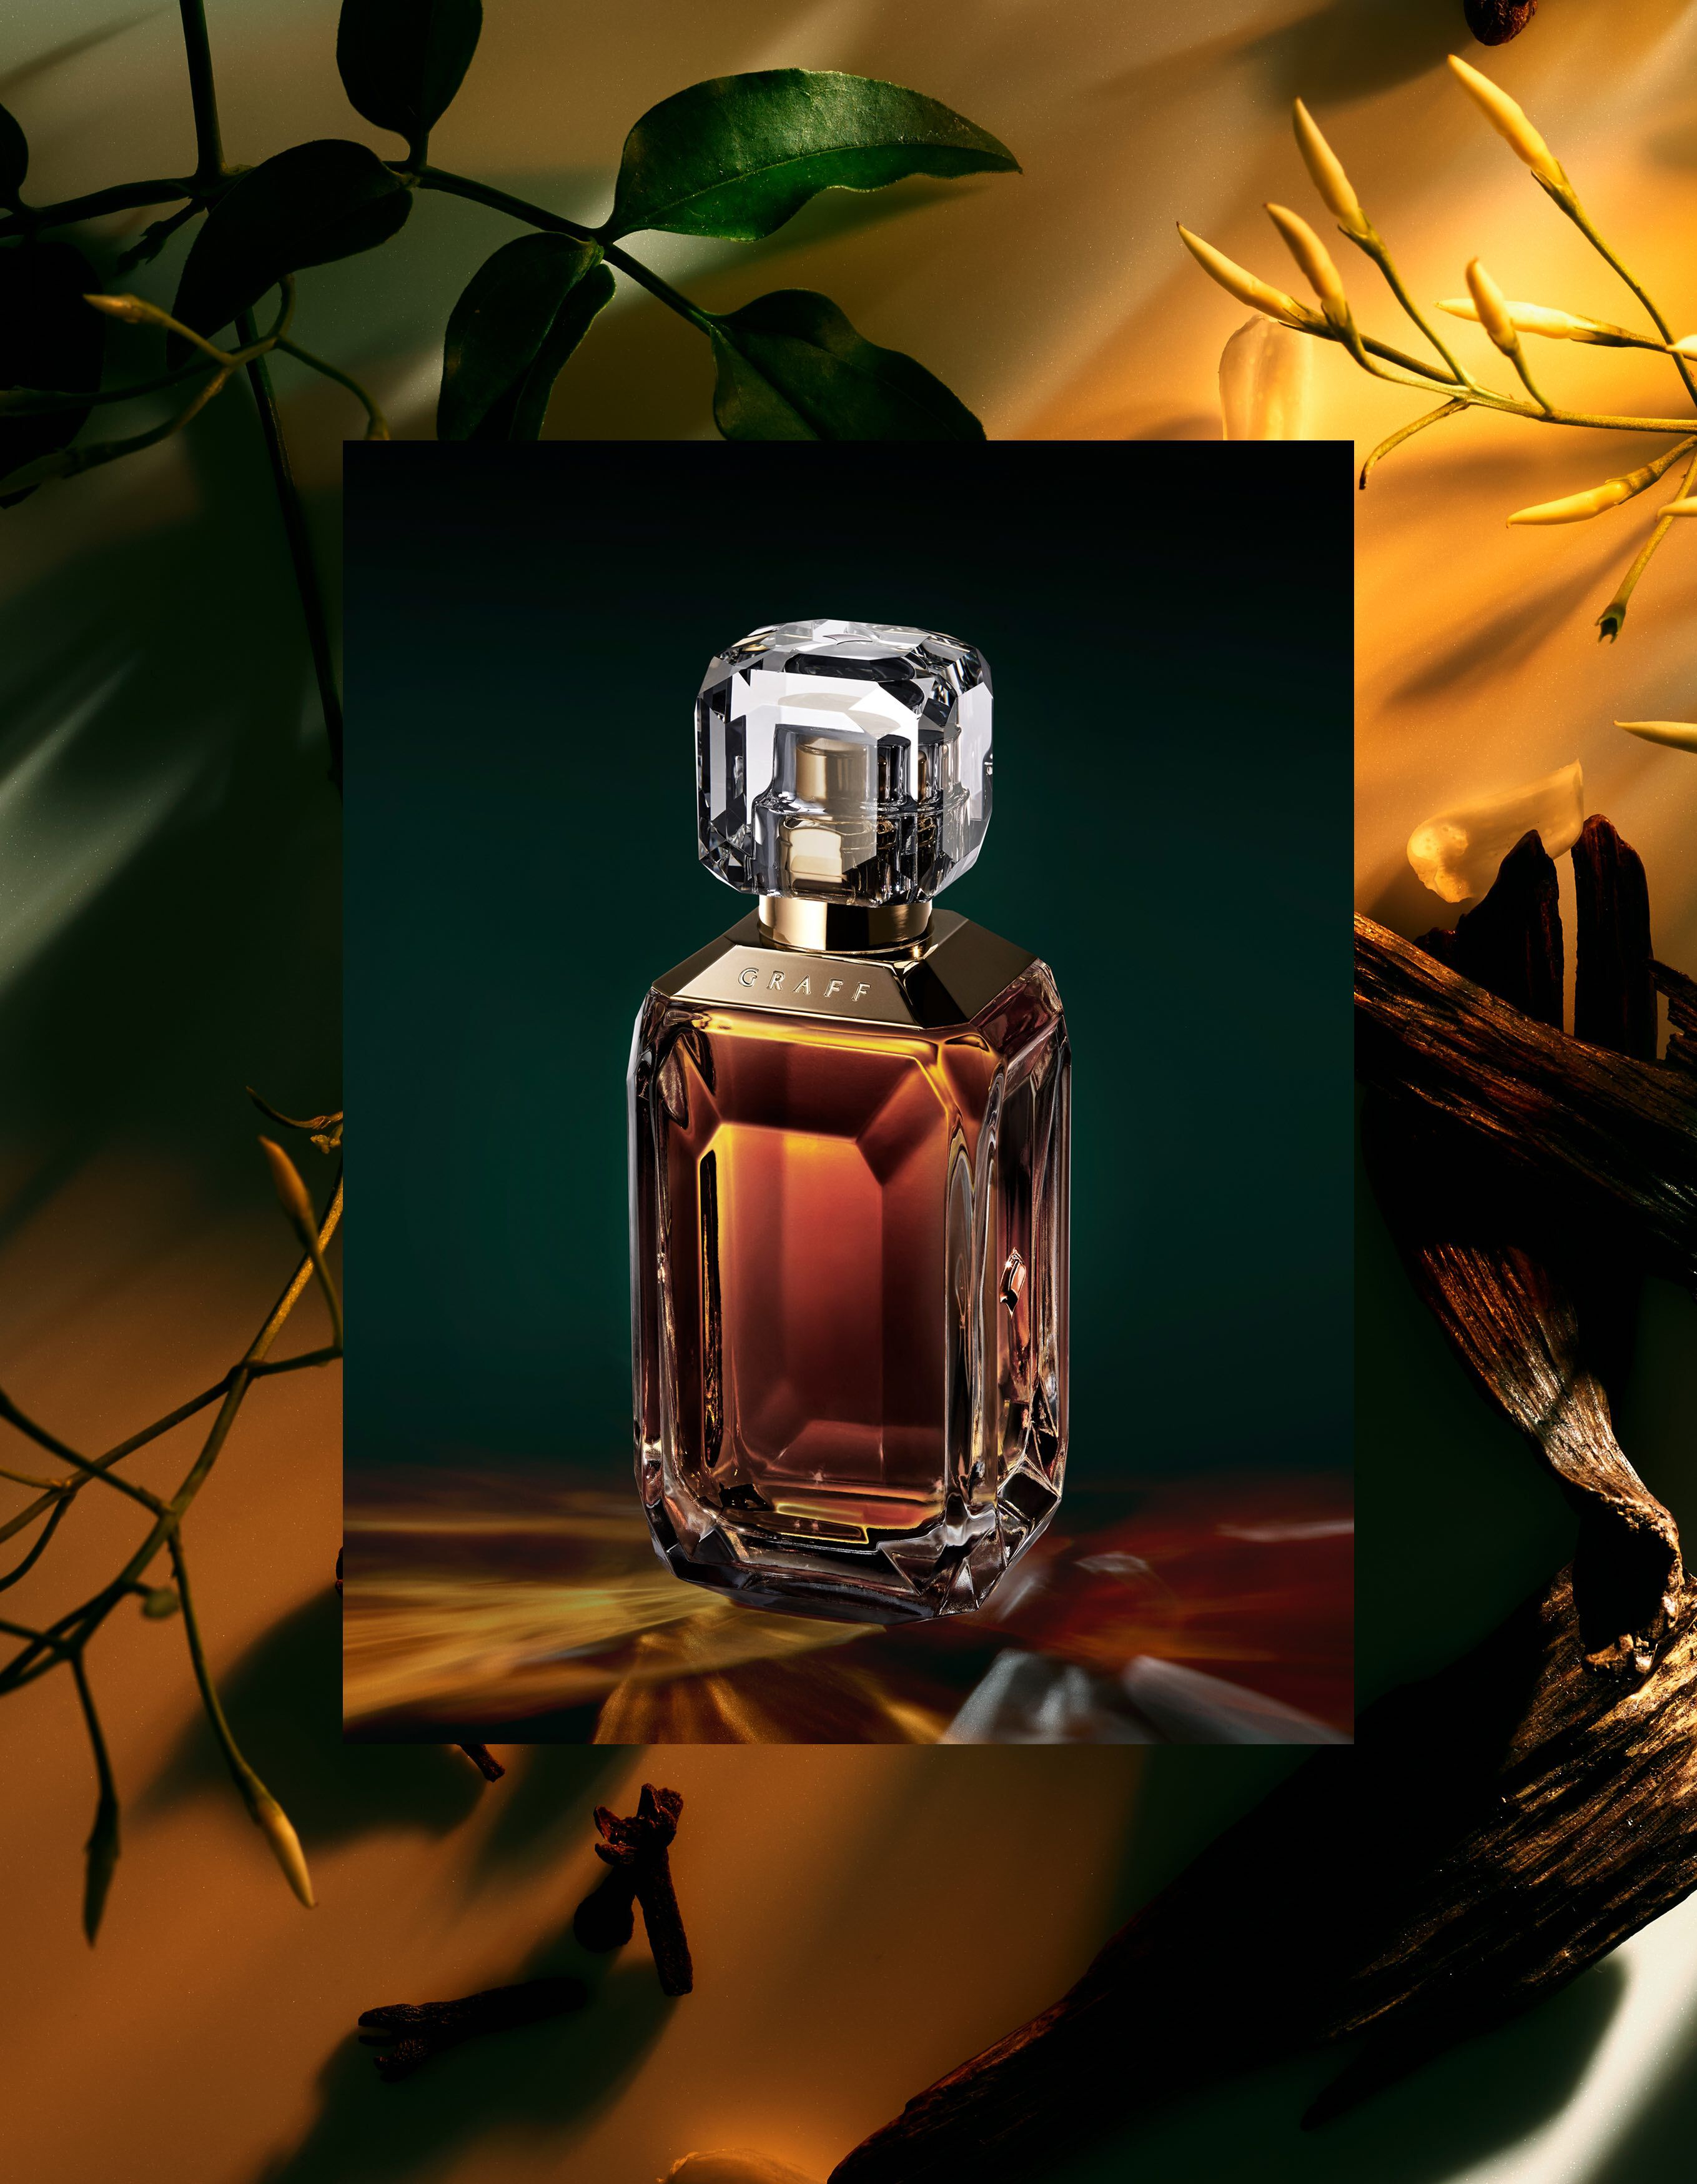 The Lesedi La Rona VI fragrance with ingredients by Graff